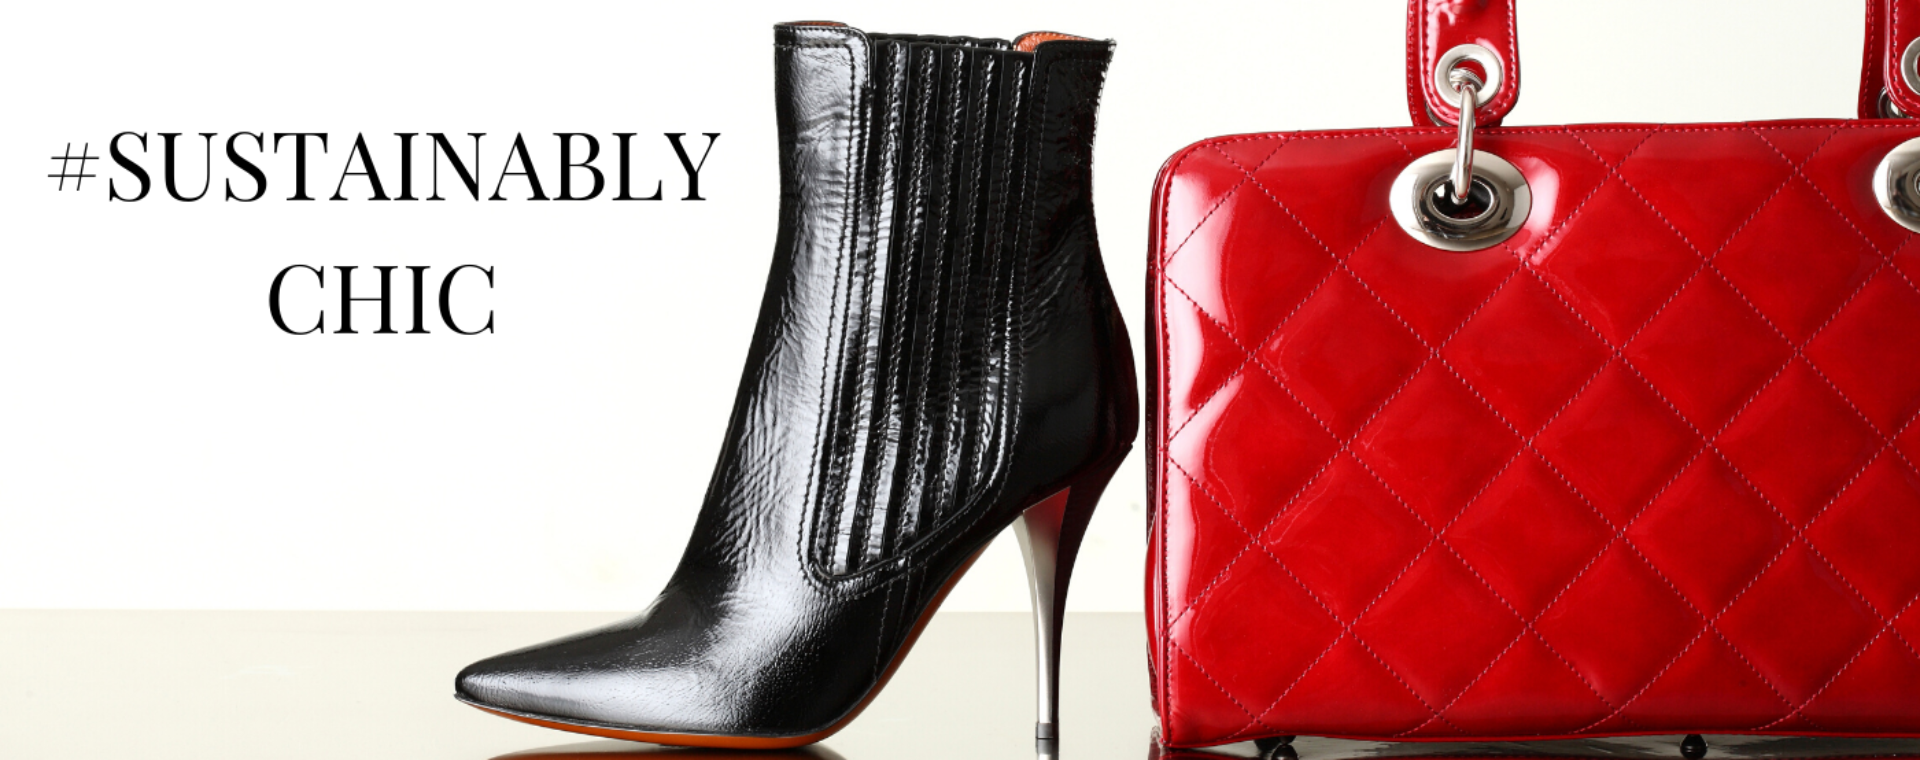 #Sustainably Chic News, Shoes & Fashion